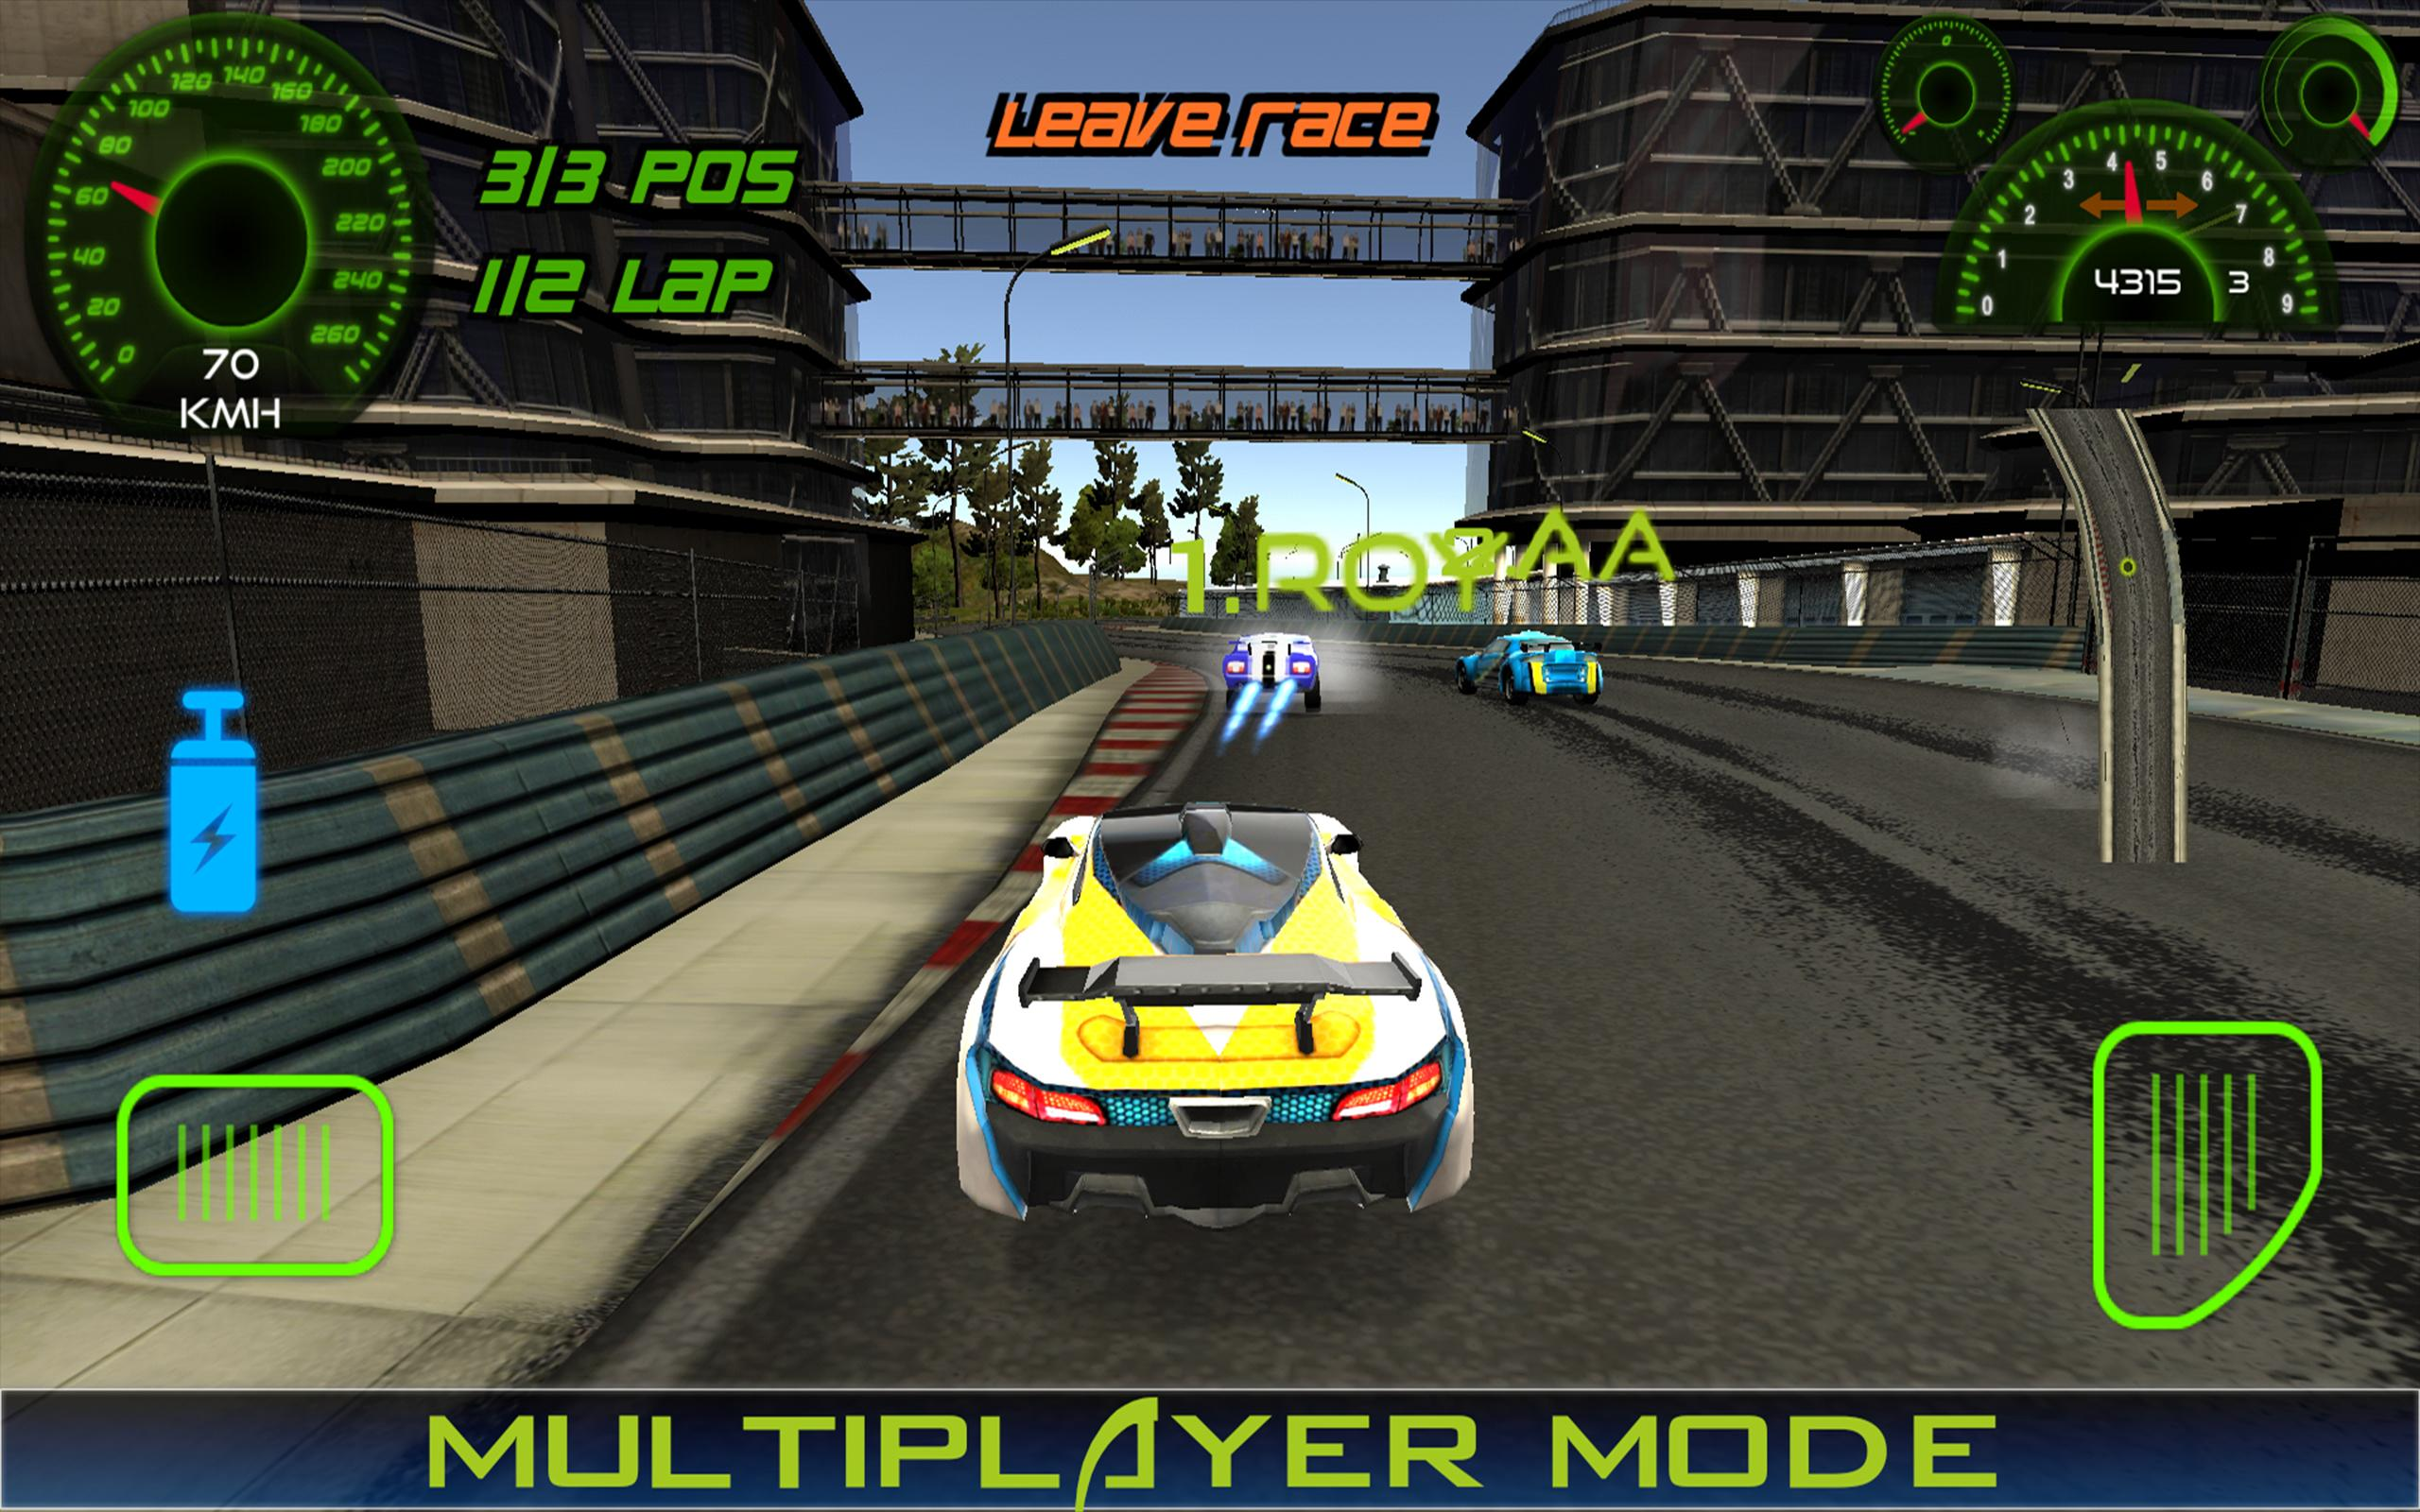 Hyper Car Racing Multiplayer Super Car Racing Game For Android Apk